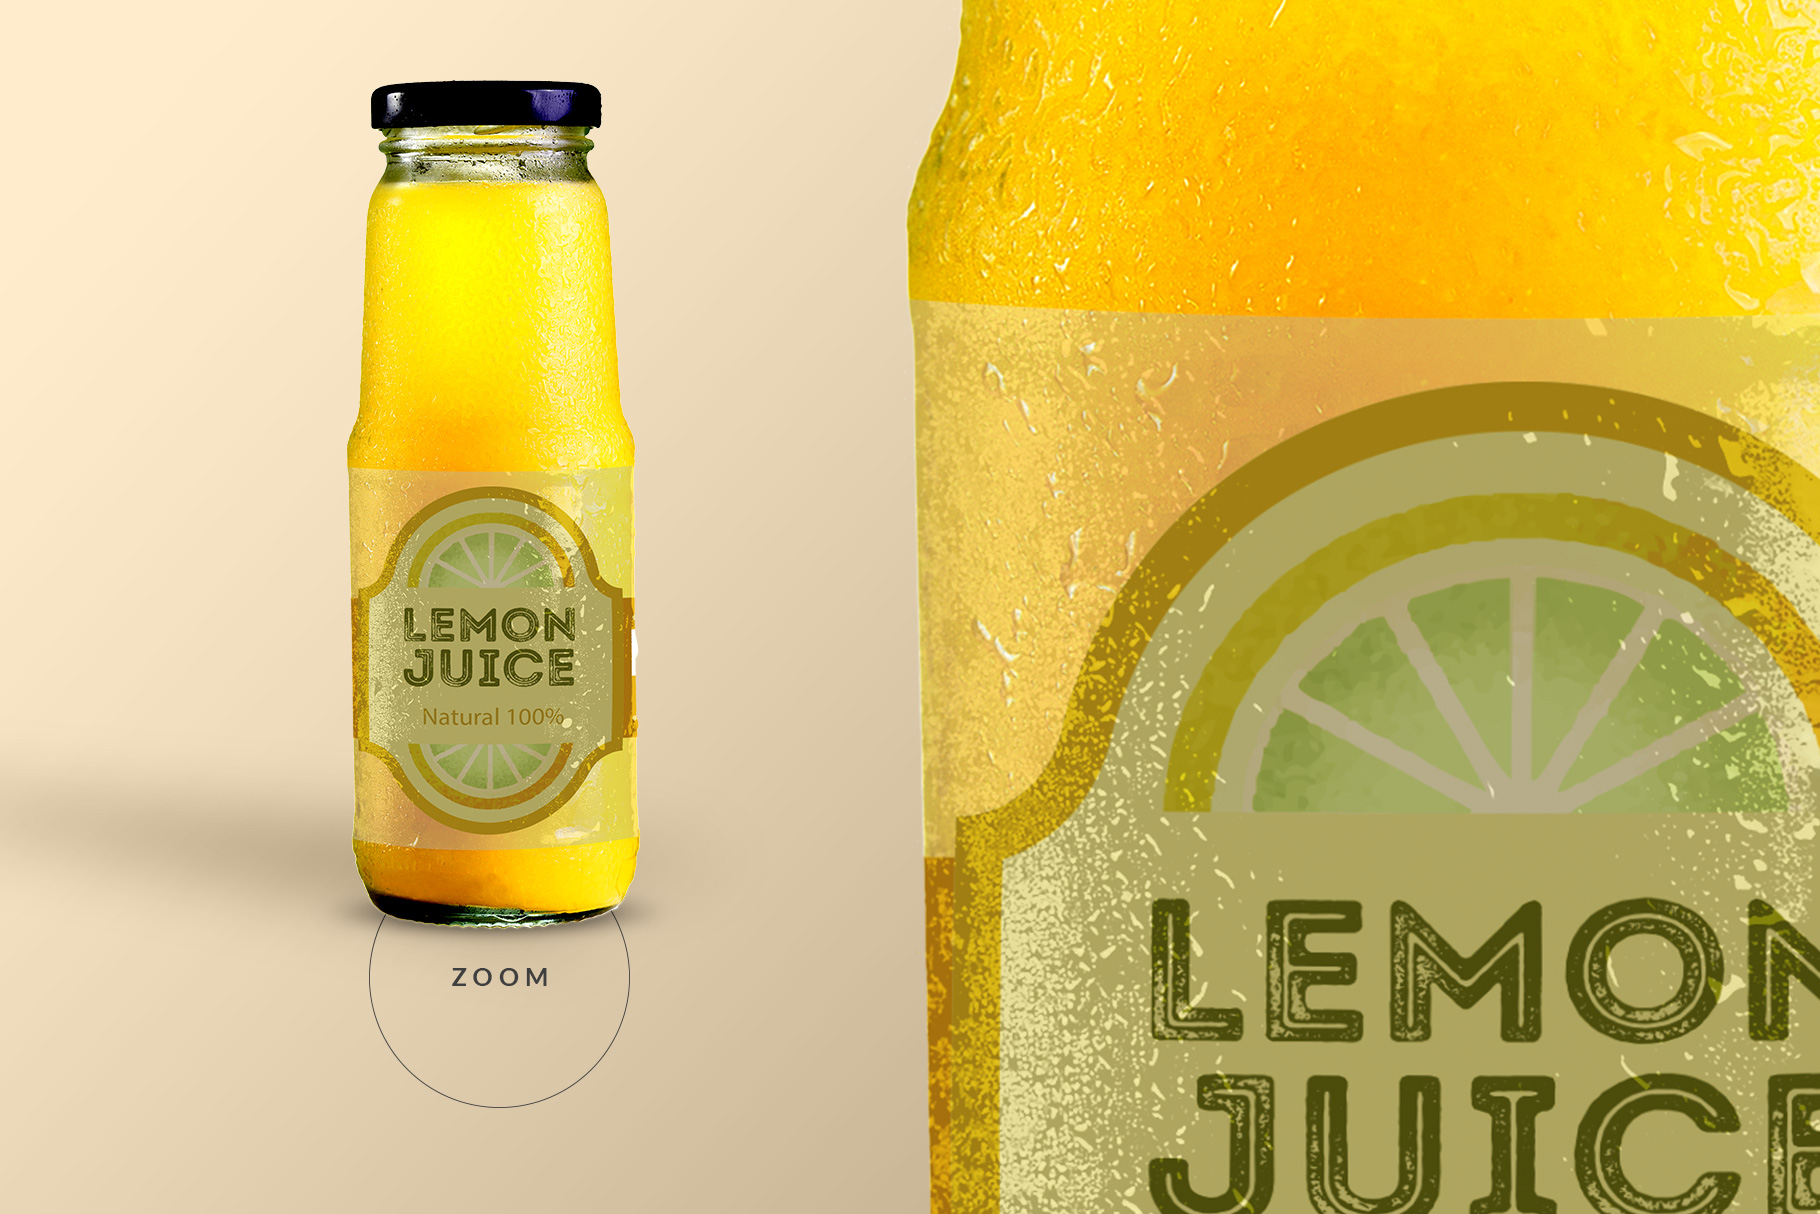 zoomed in image of the fruit juice glass container mockup